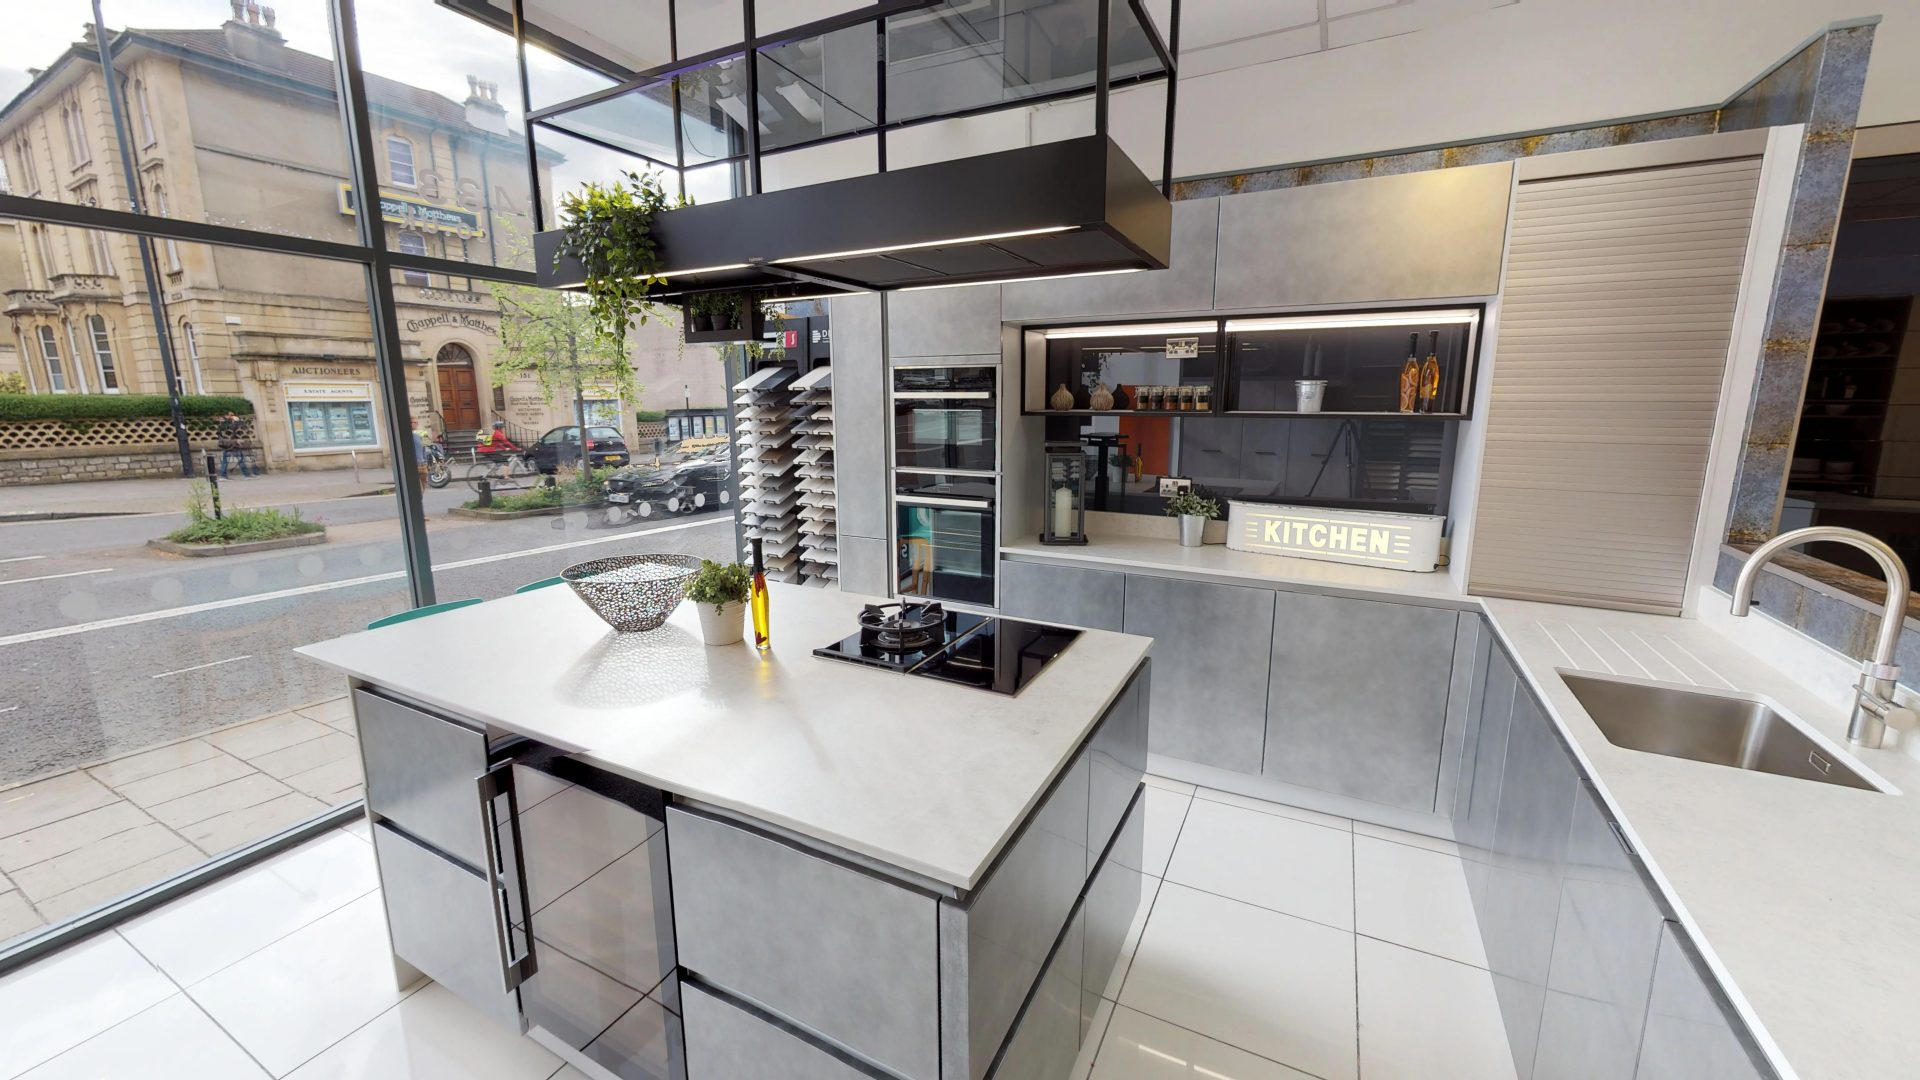 The-Kitchen-Partners-04302019_130826